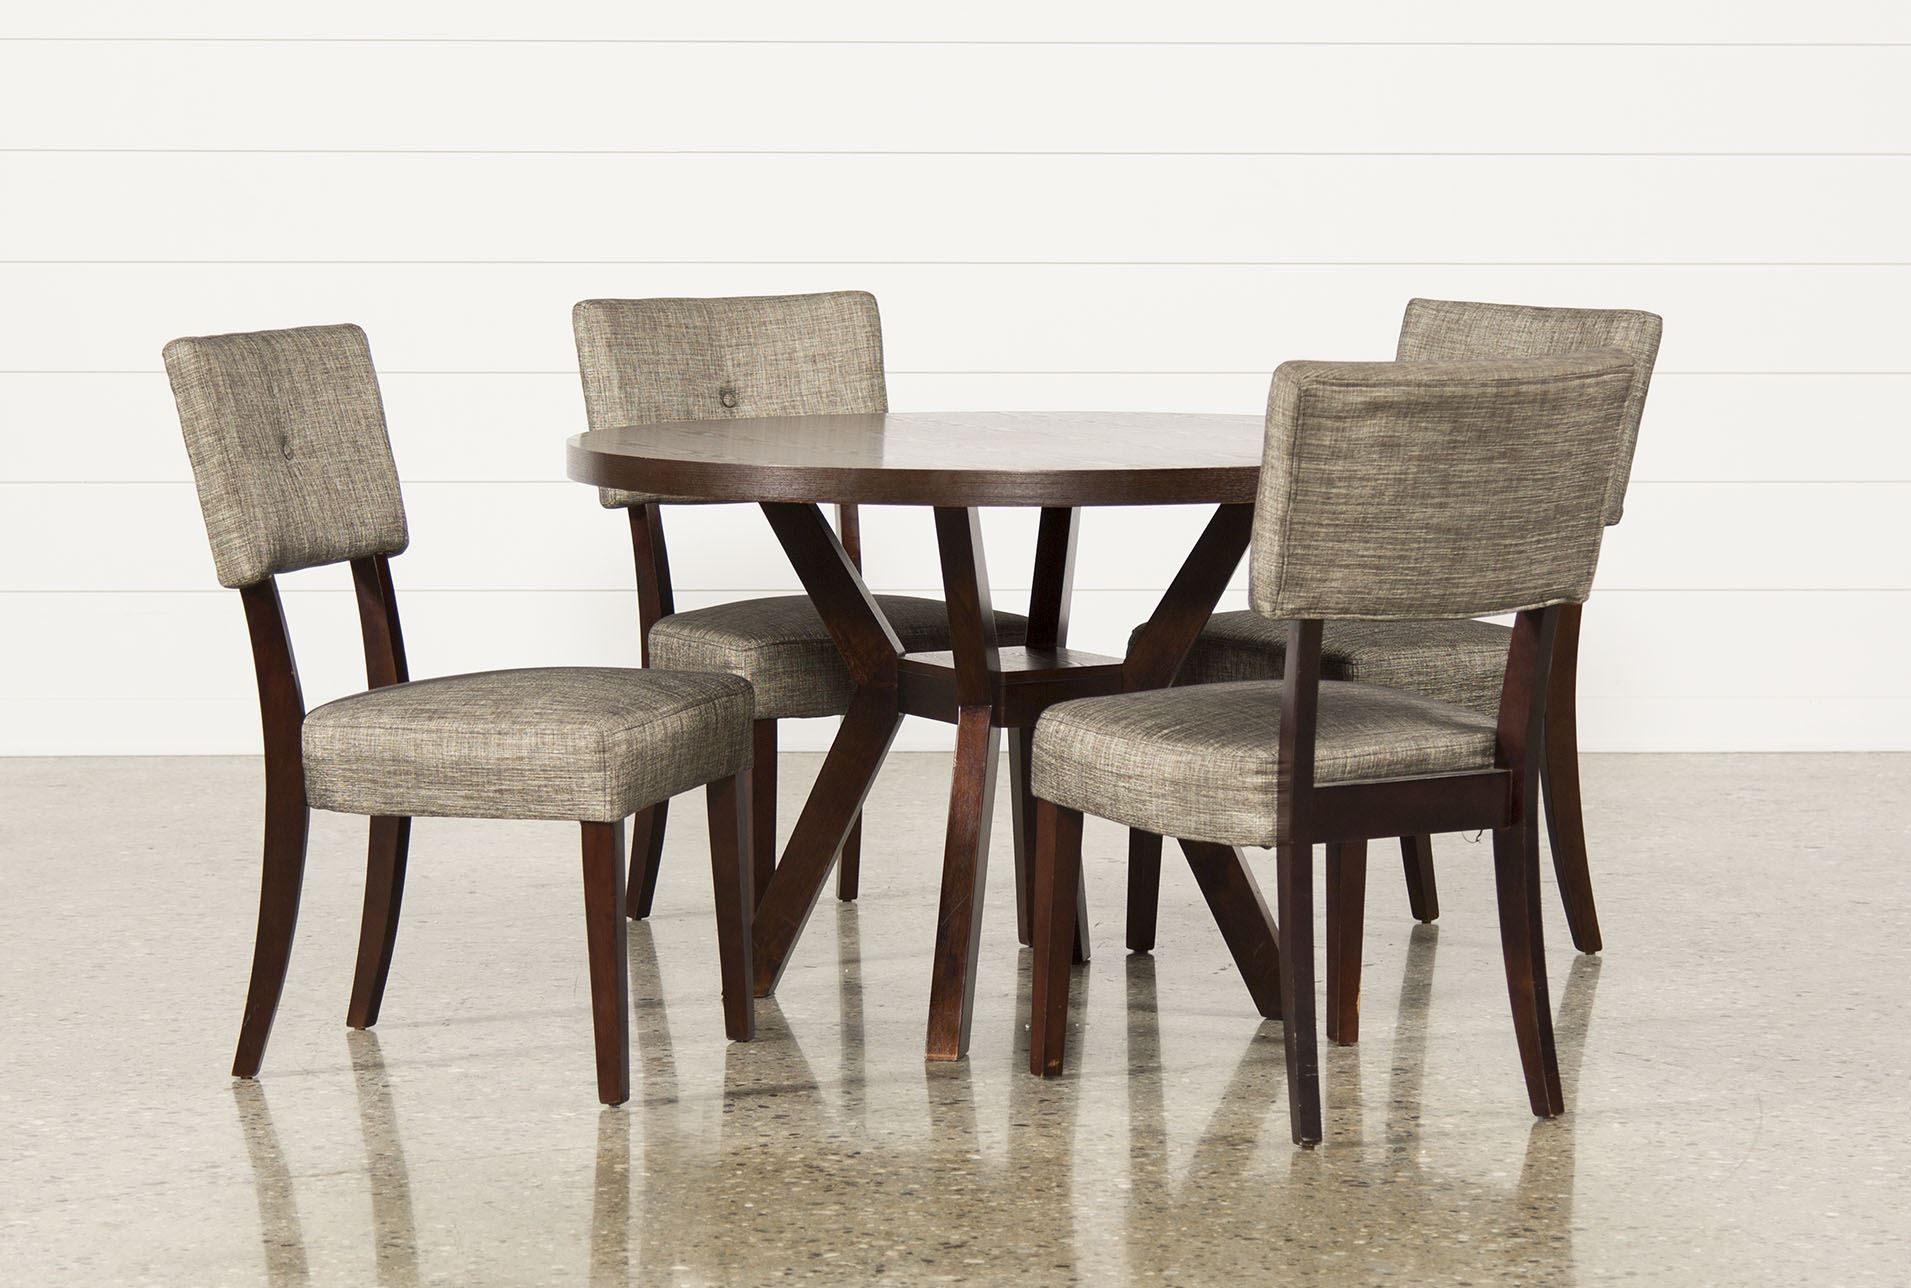 Names Of Dining Room Furniture Pieces Shop All Dining Room Furniture Dining Room Furniture For Sale